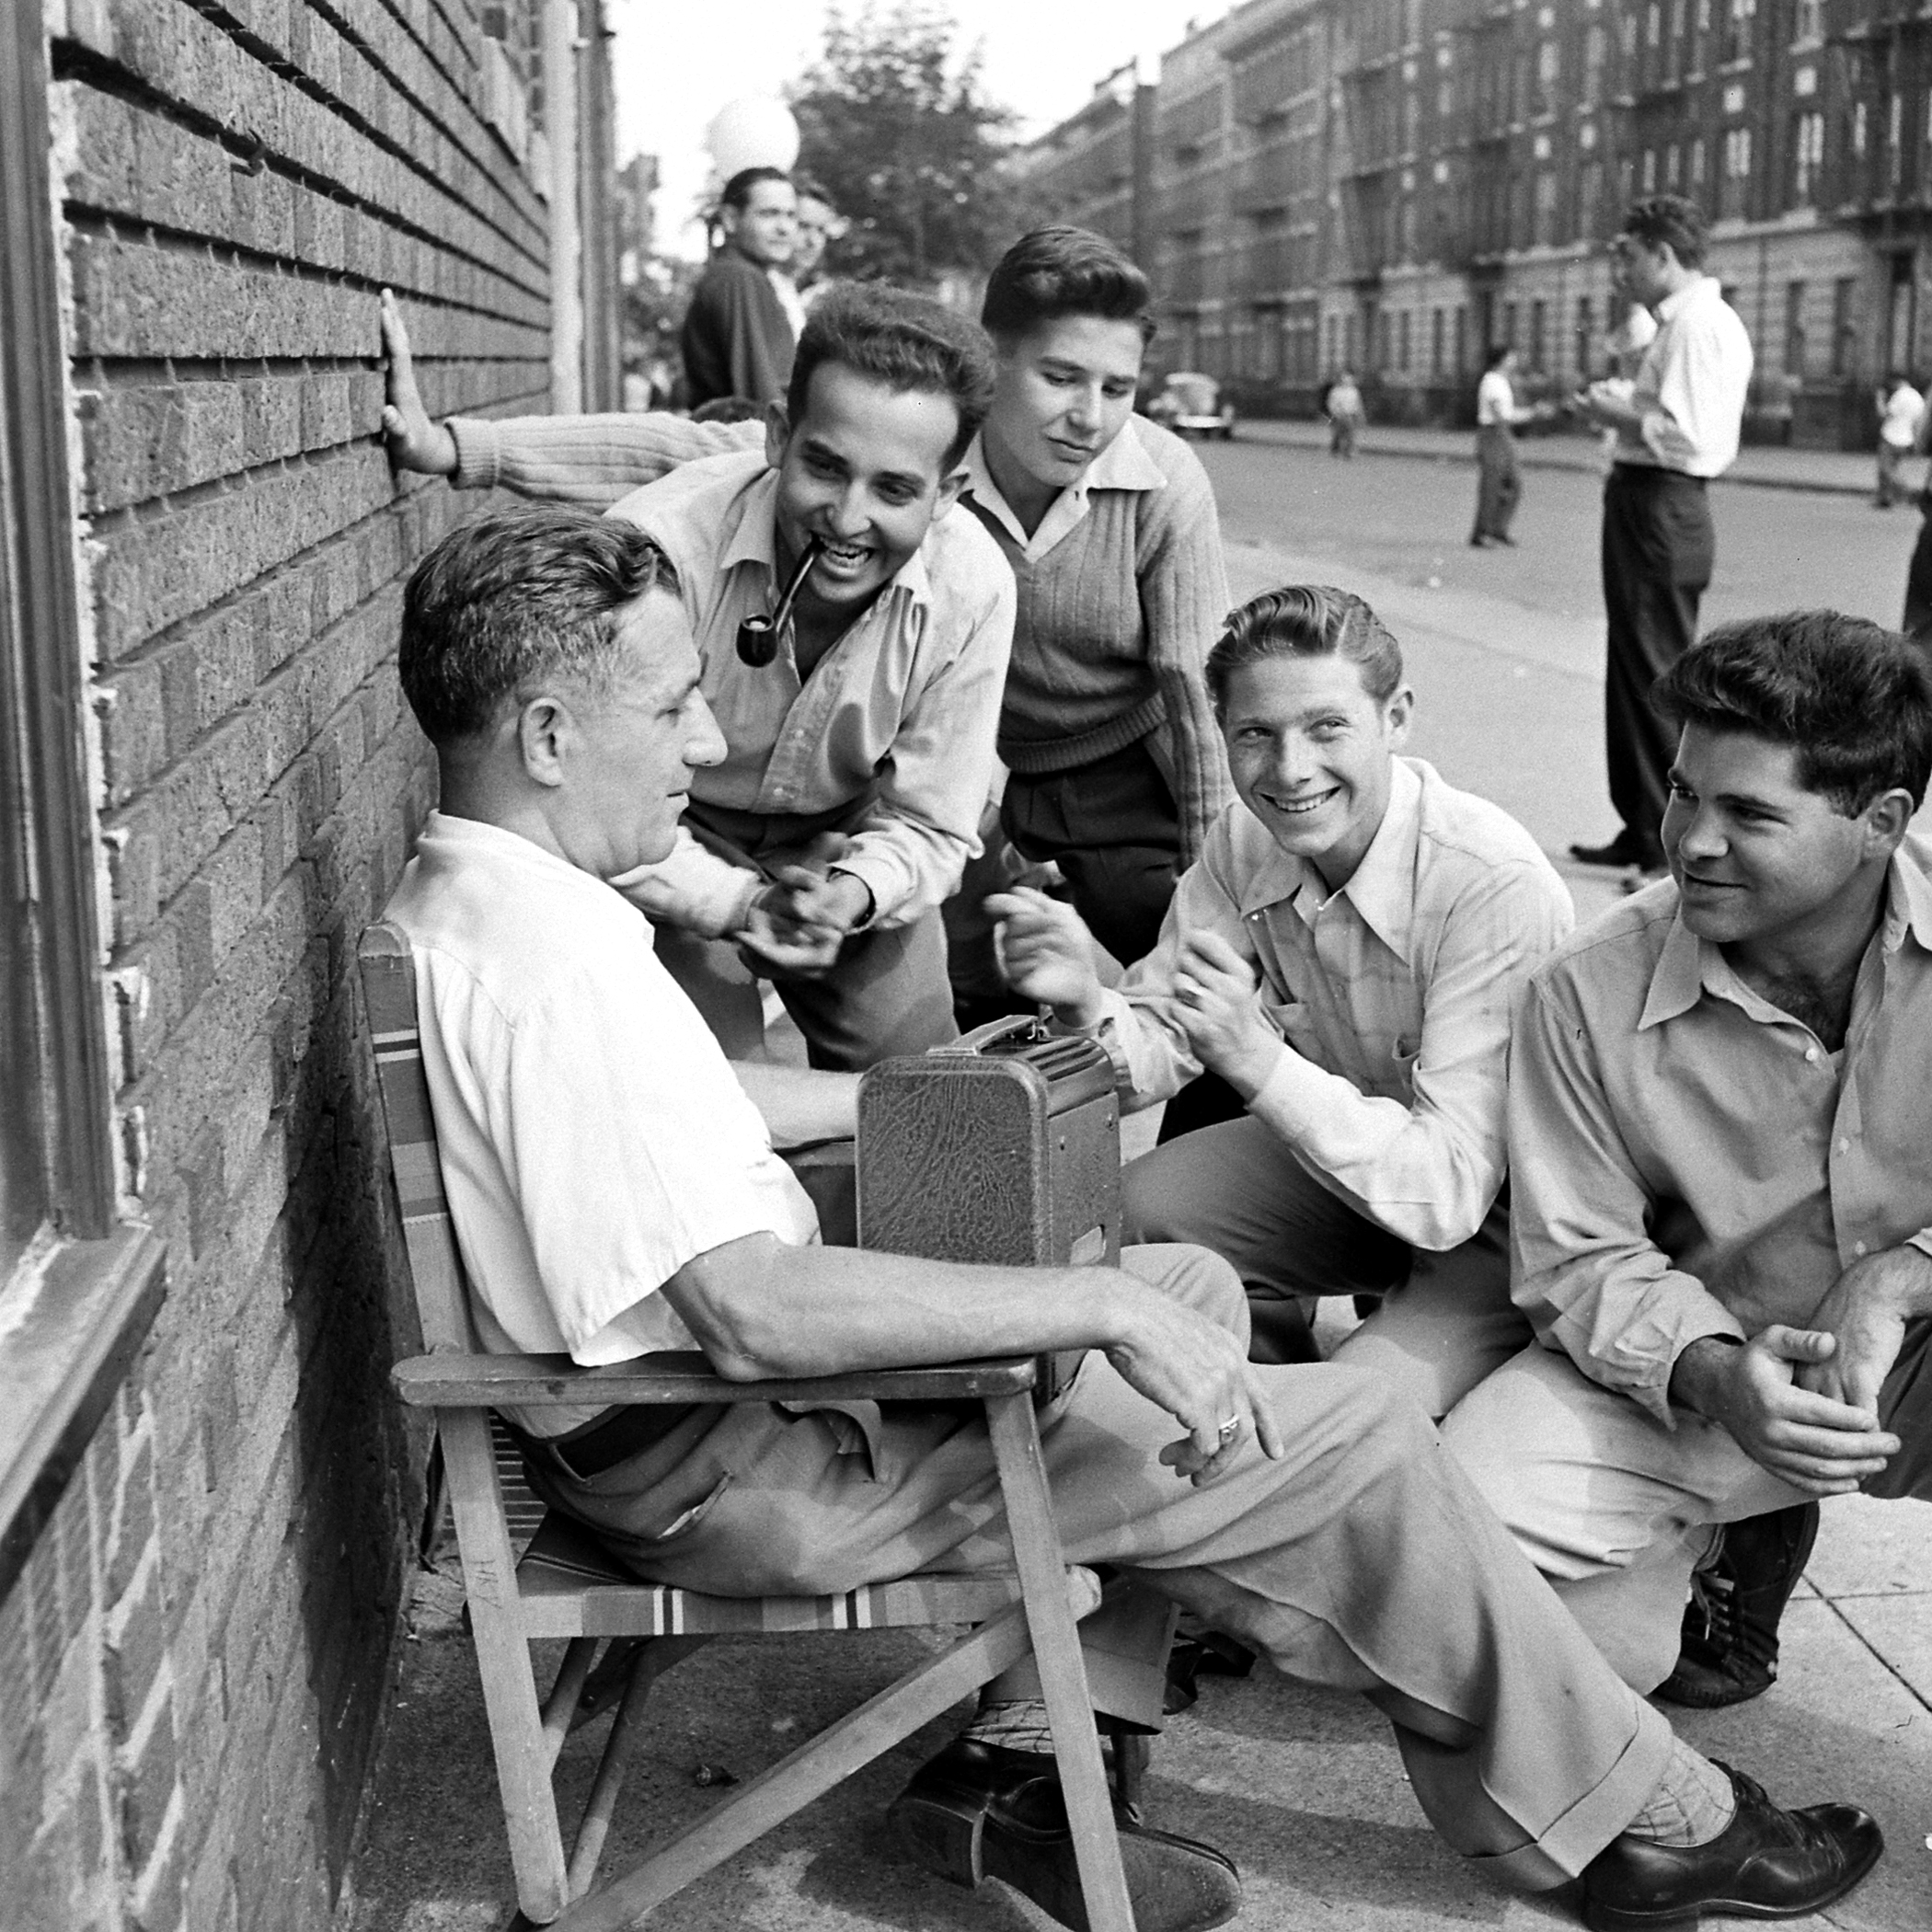 Listening to a Dodgers-Giants ballgame on the radio, Brooklyn, 1946.